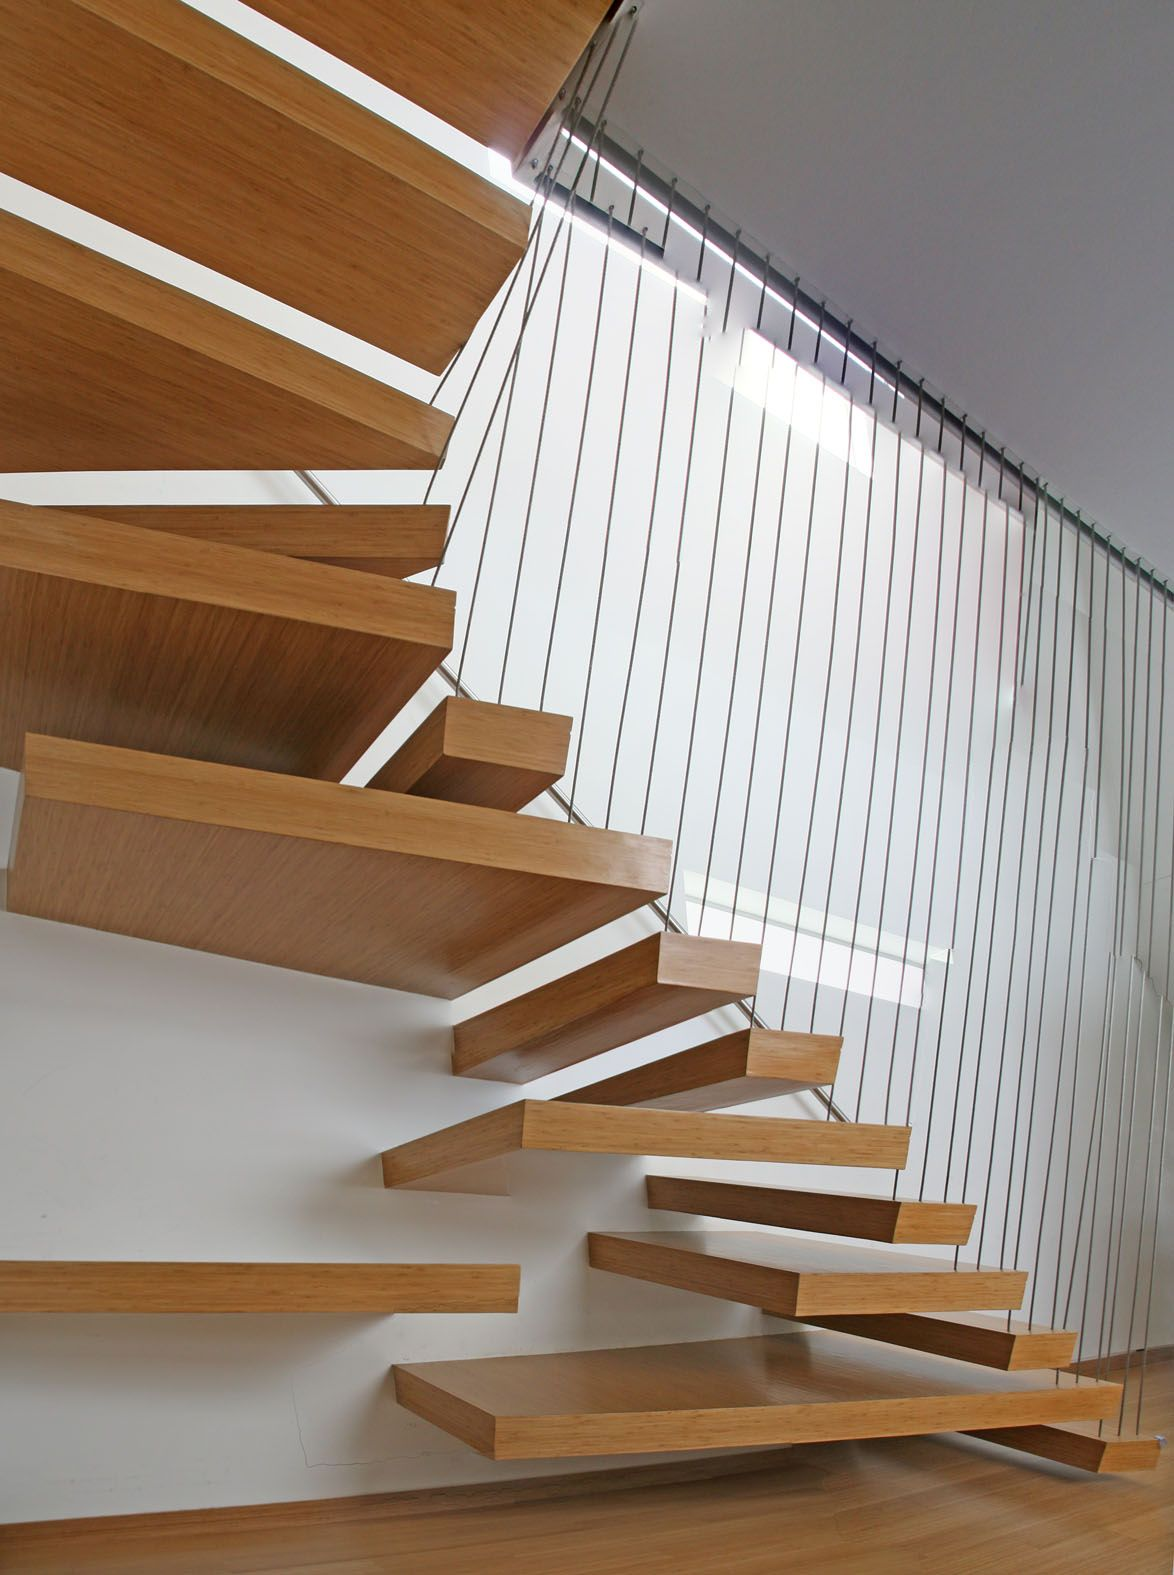 http://www.stairporn.org/2012/10/29/sliced-stair-3/